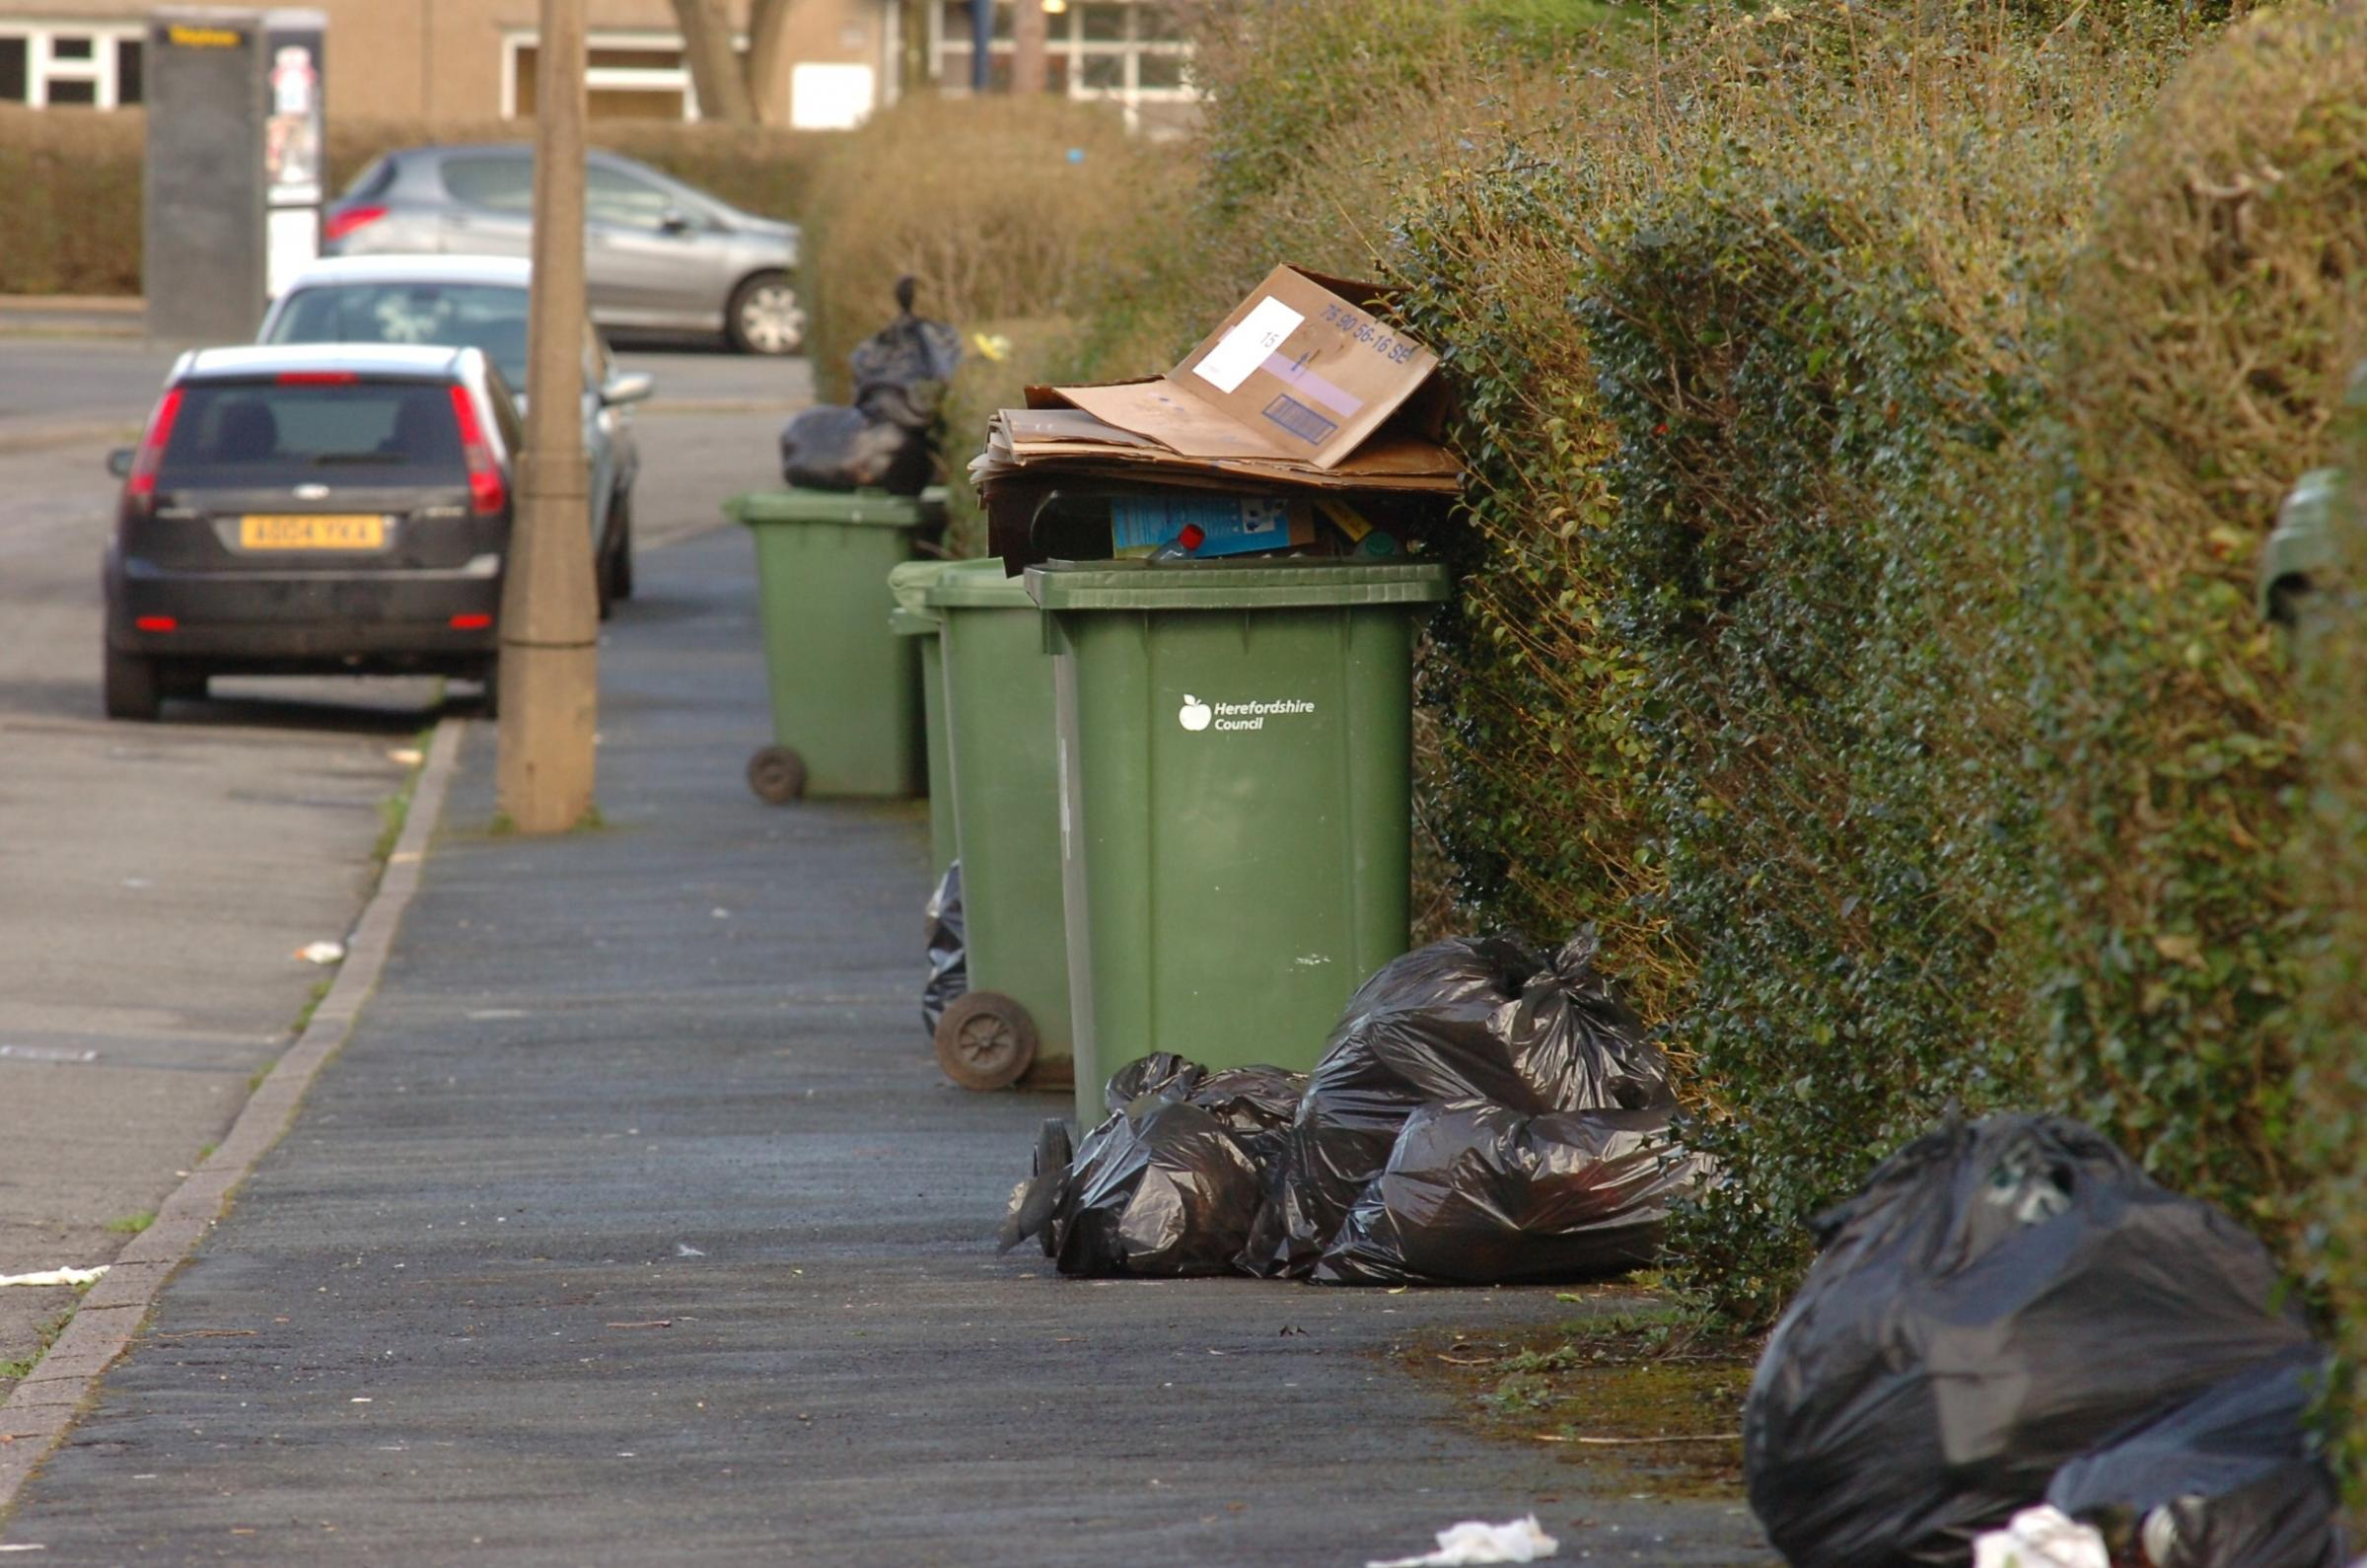 'What a load of rubbish': Bin collections in the county set to become fortnightly